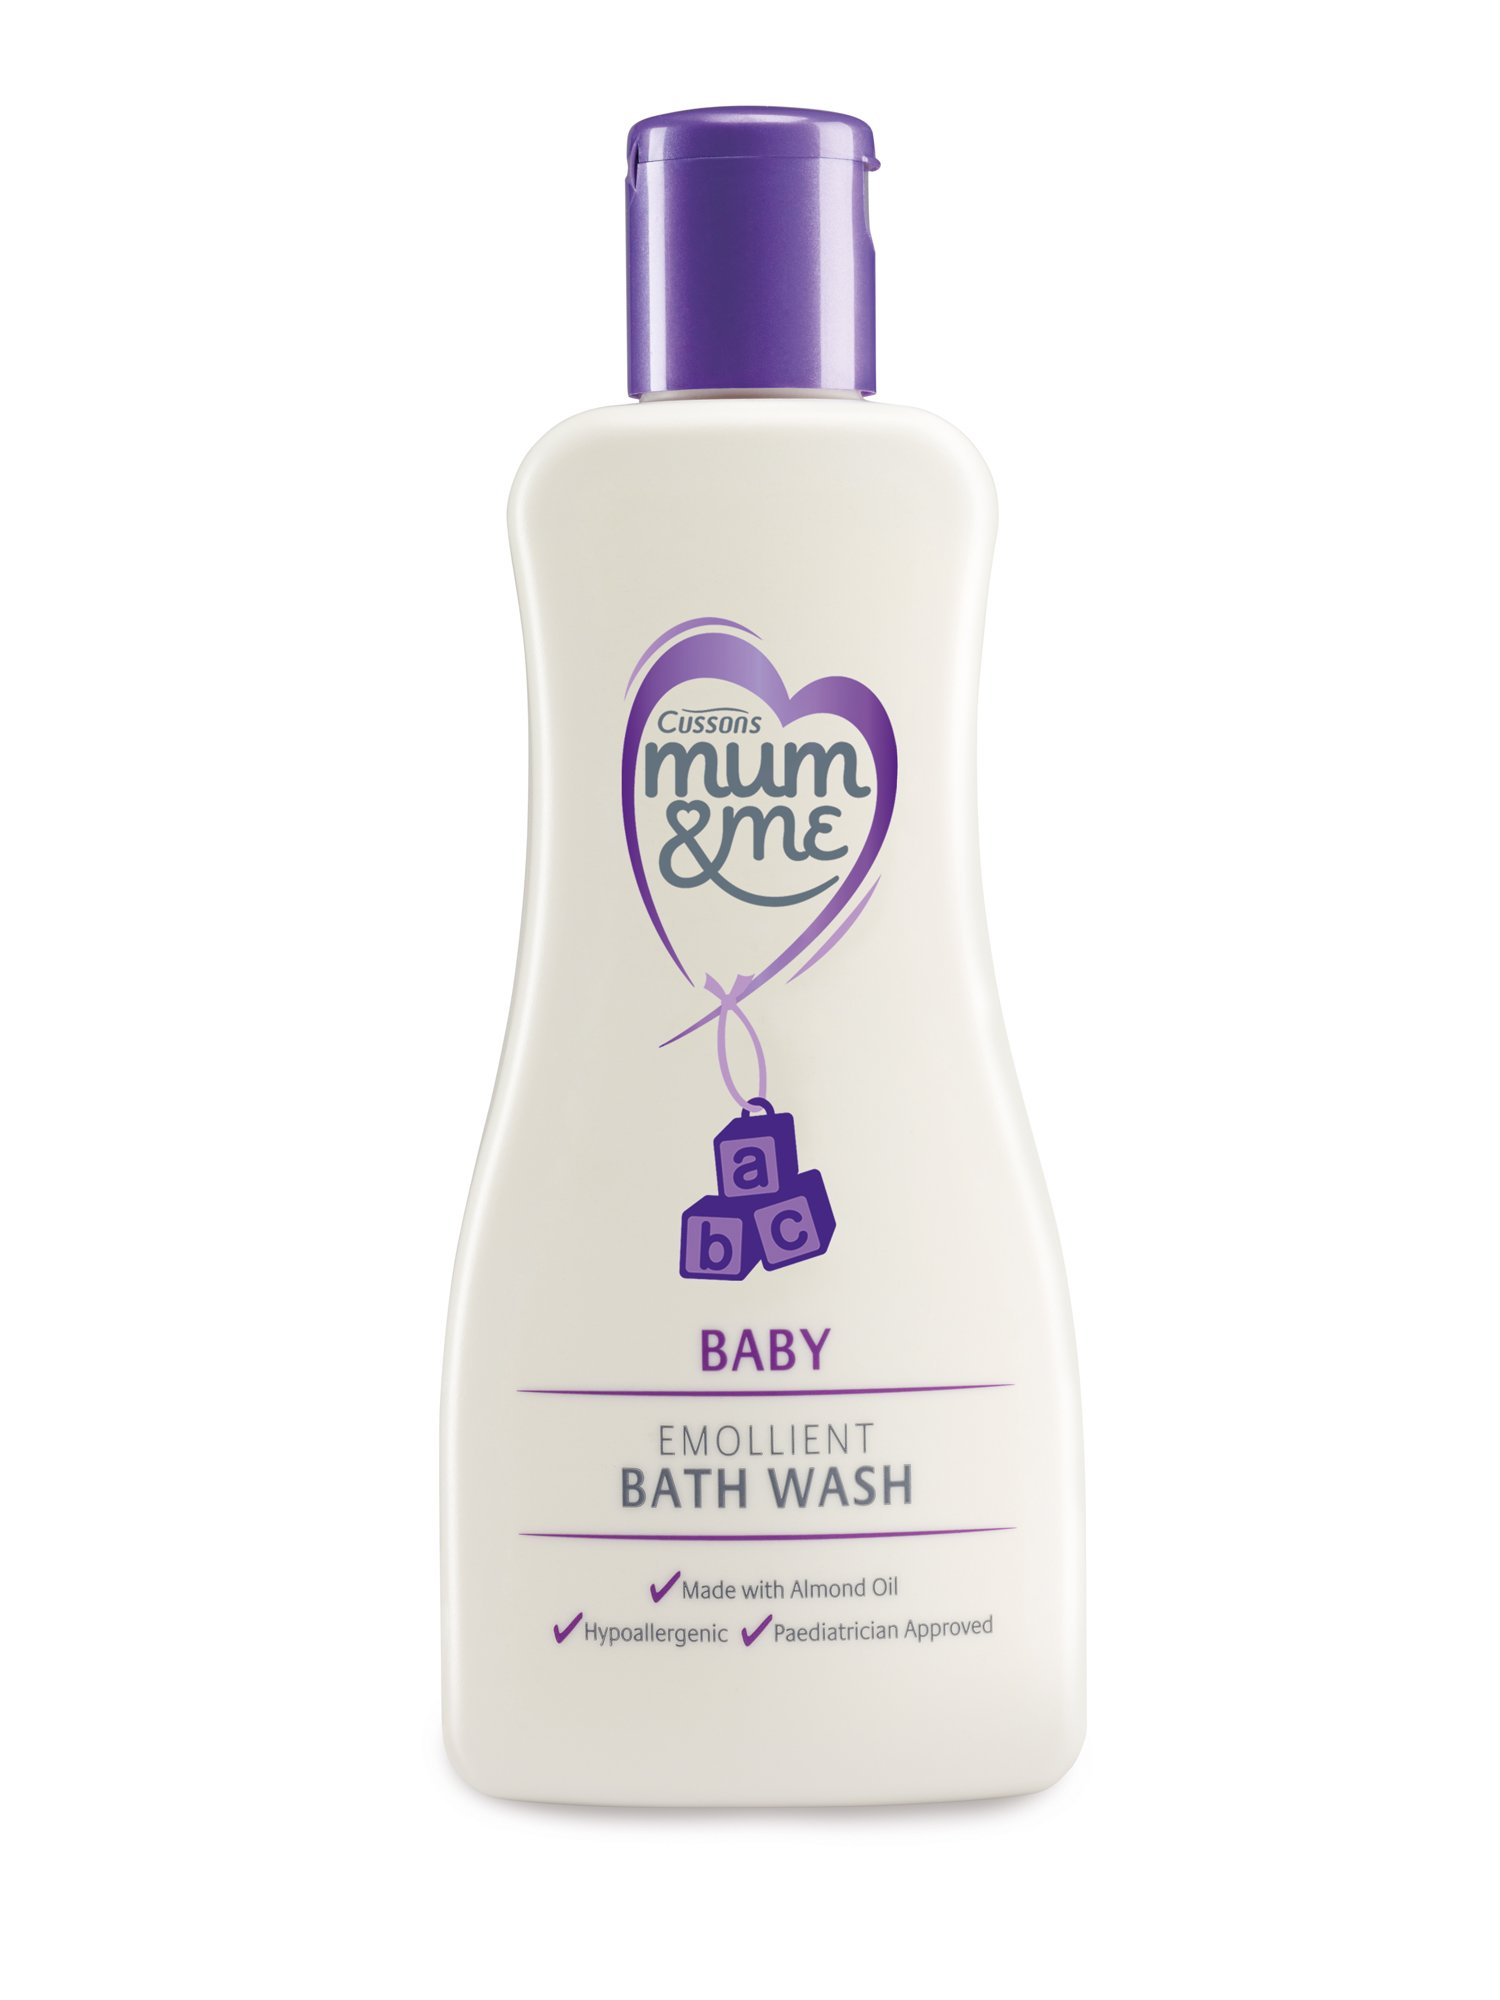 Cussons Mum and Me Baby Emollient Bath Wash by PZ Cussons